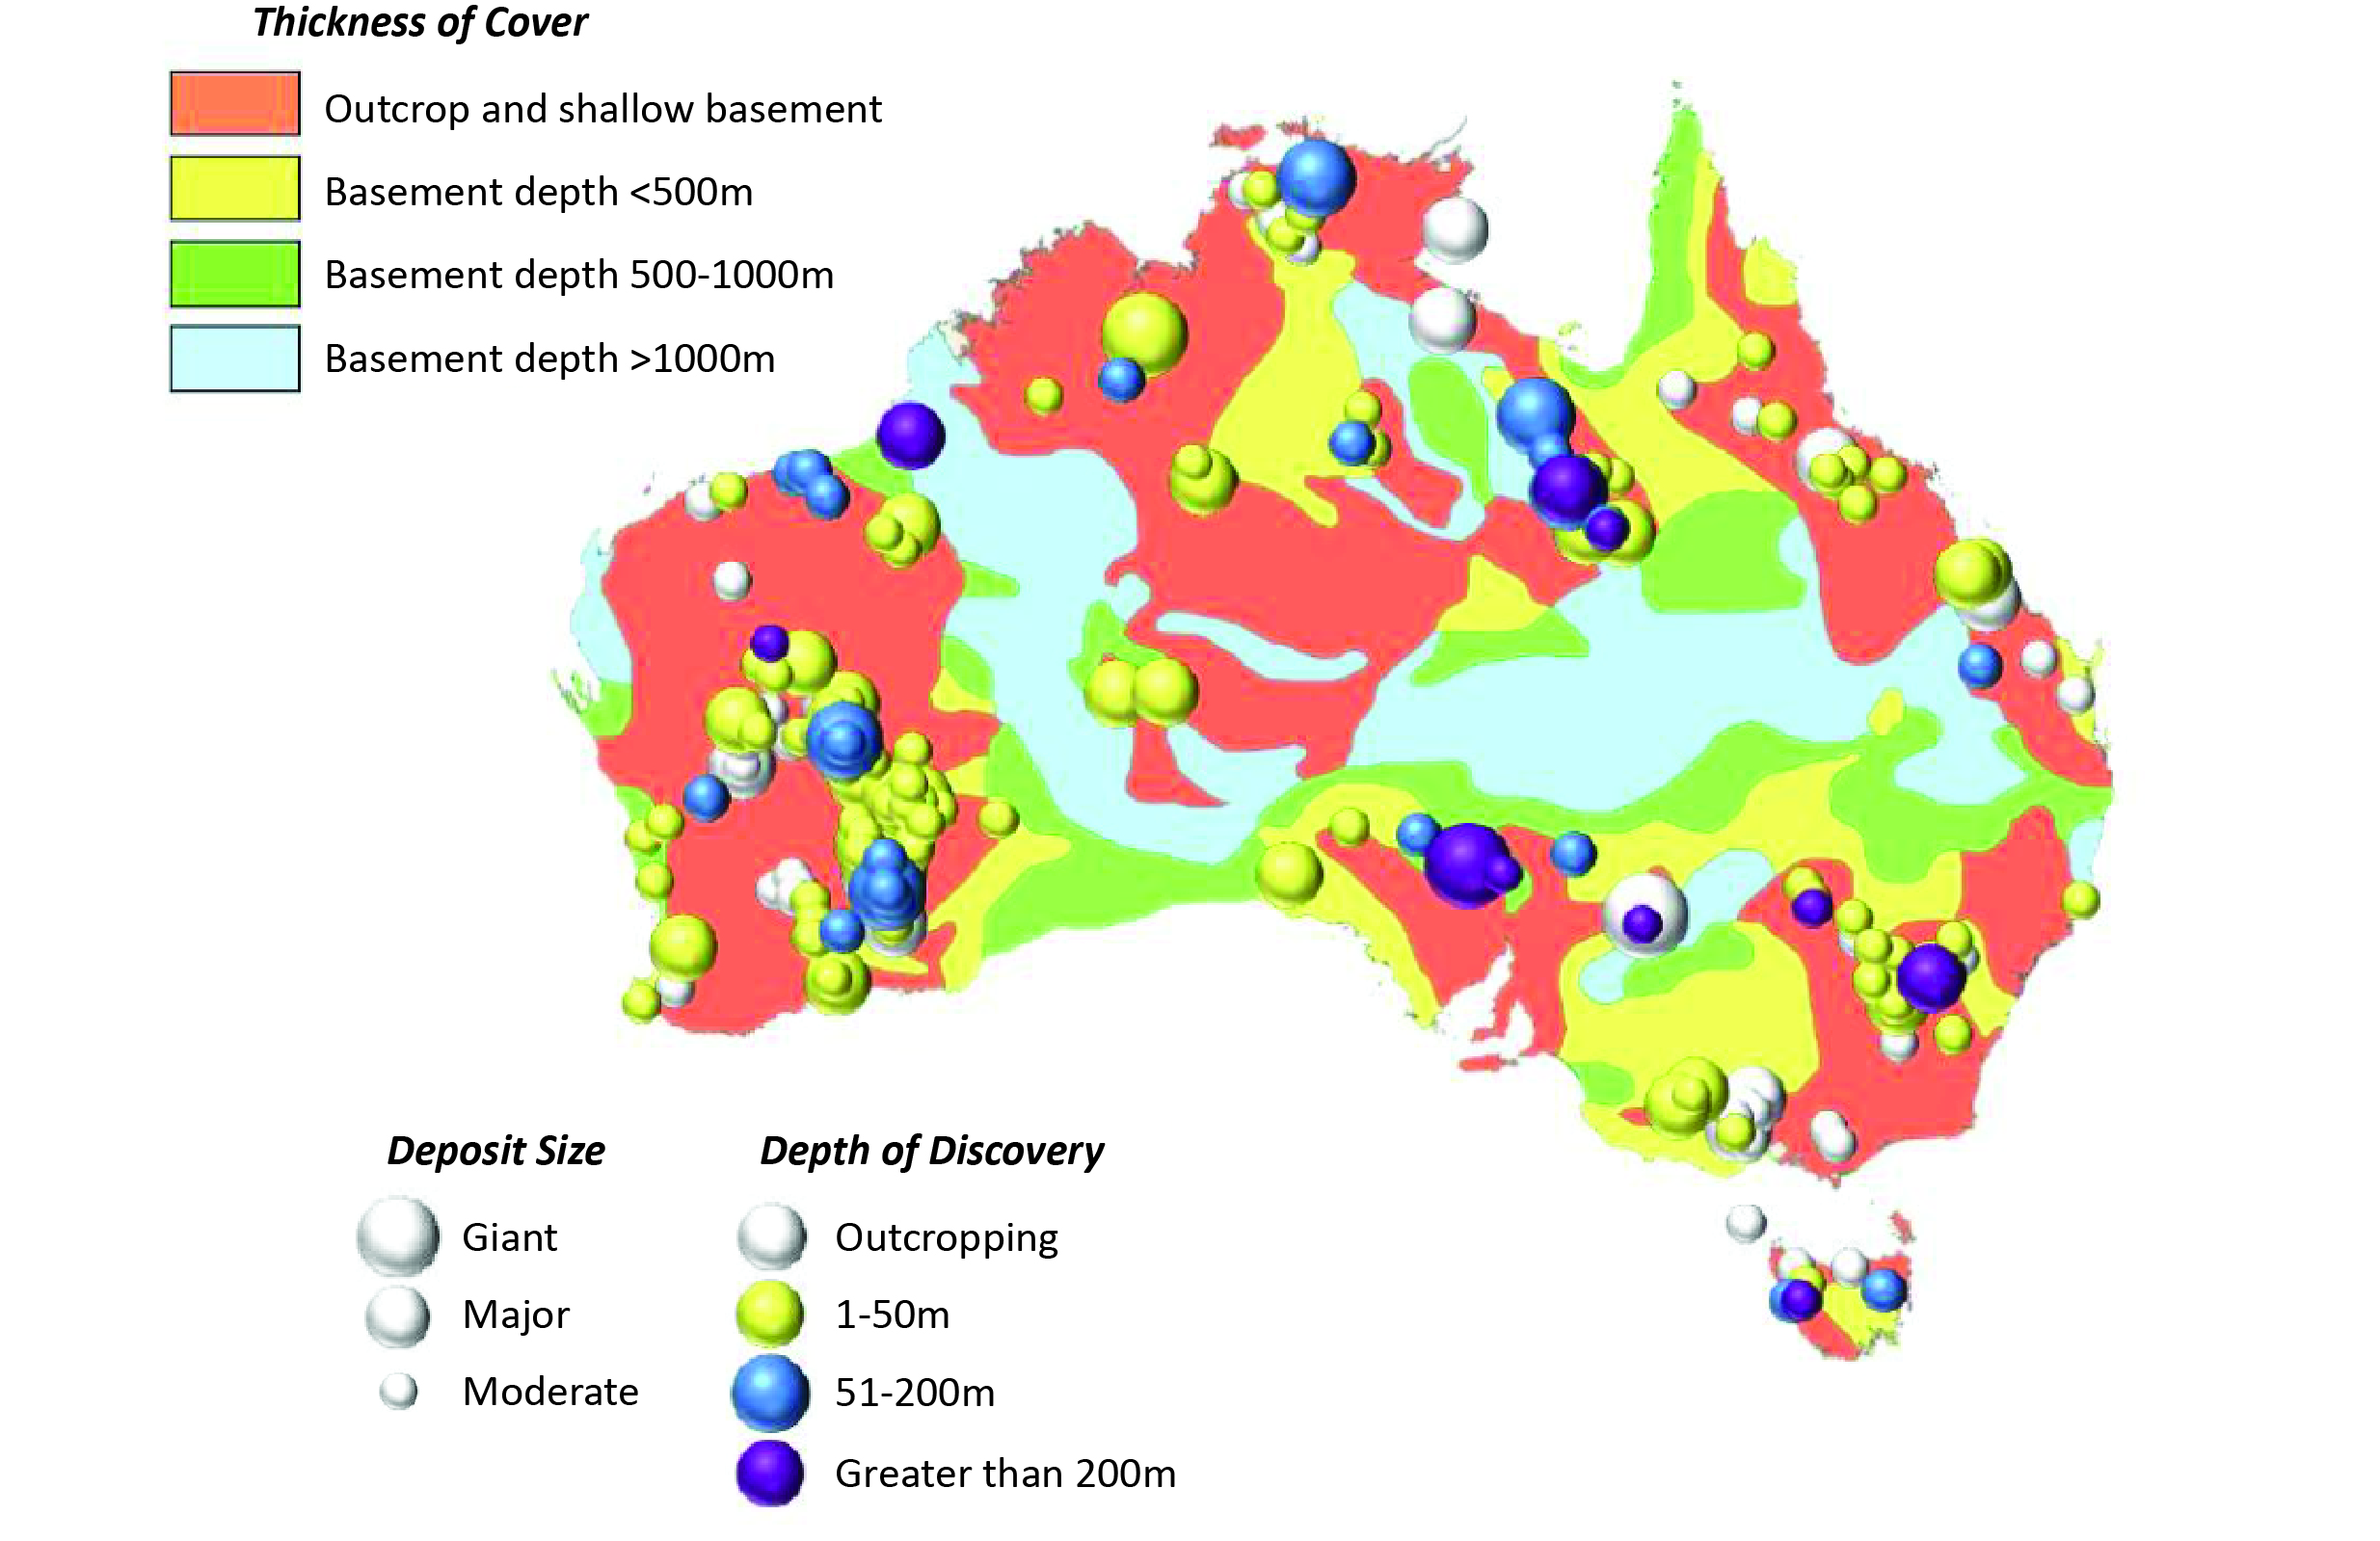 Geographical distribution and depth of Australian mineral discoveries –excluding bulk commodities - in relation to estimated cover thickness. Data sourced from MinExConsulting (August 2010) and Geoscience Australia. Reproduced with permission of Richard Schodde, MinEx Consulting.